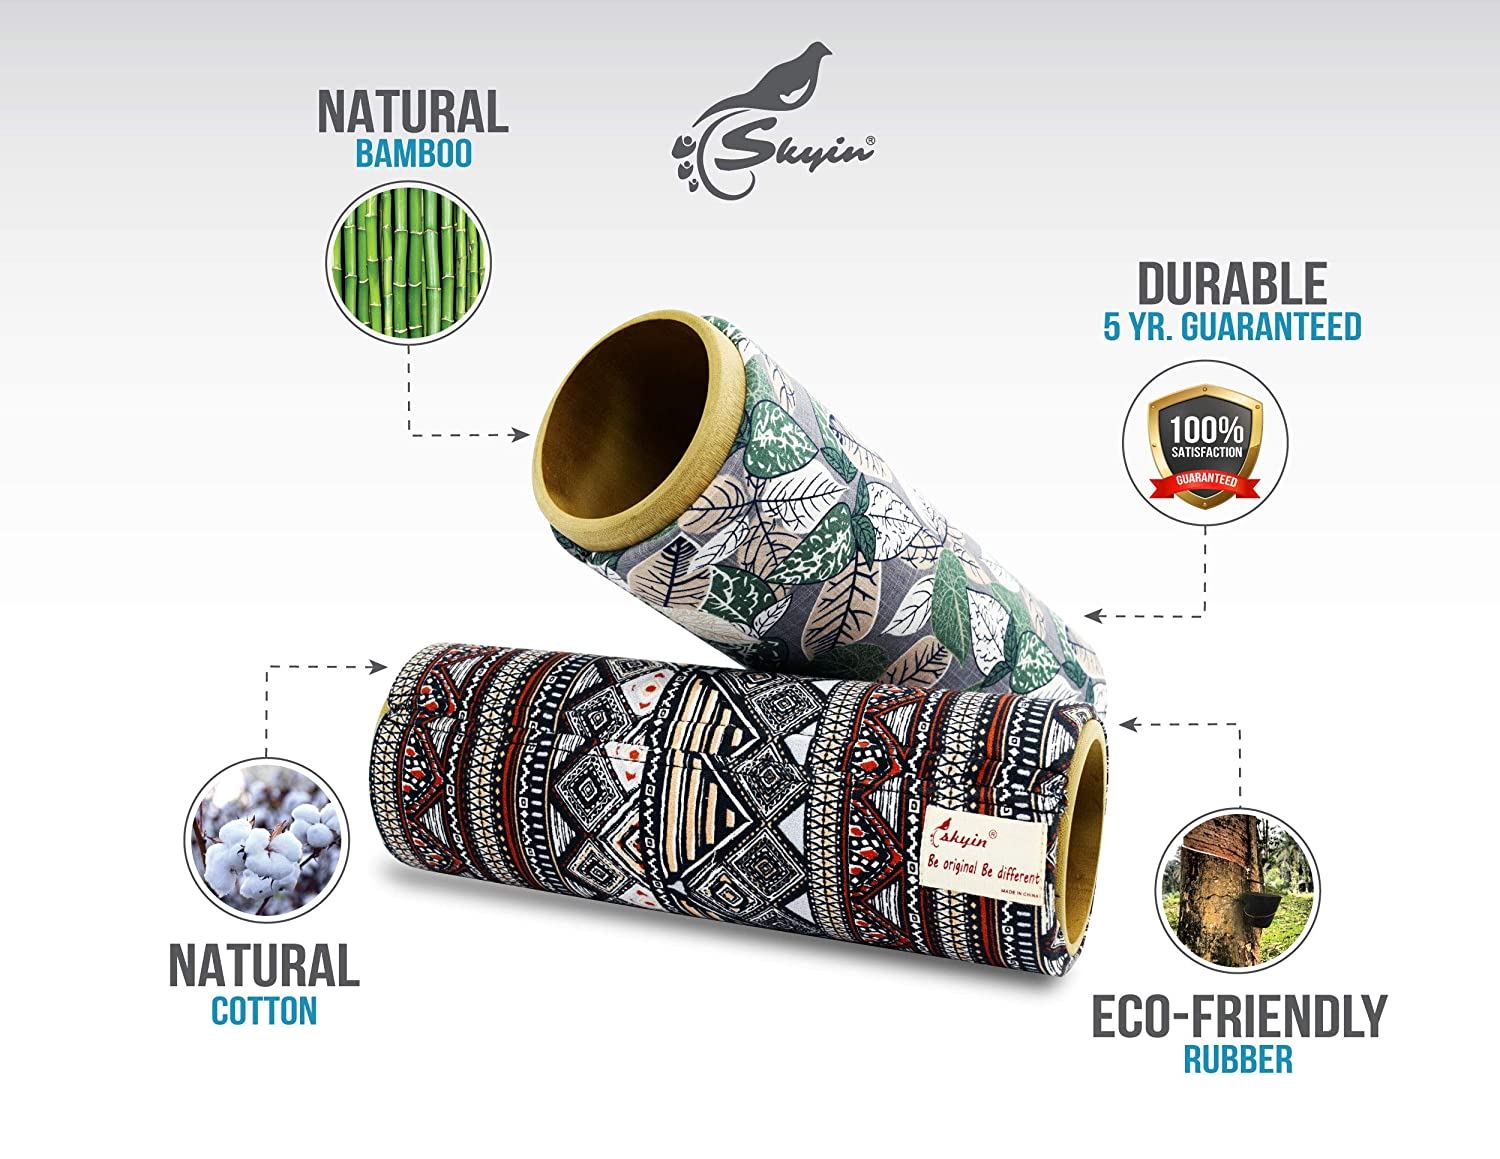 Made of Natural Materials,Eco Friendly Massage Roller Hope Firm Foam Roller,5 Year Warranty,Were a Houston-Based Company with 60-Day Satisfaction Guarantee Skyin Foam Roller We/'re a Houston-Based Company with 60-Day Satisfaction Guarantee.